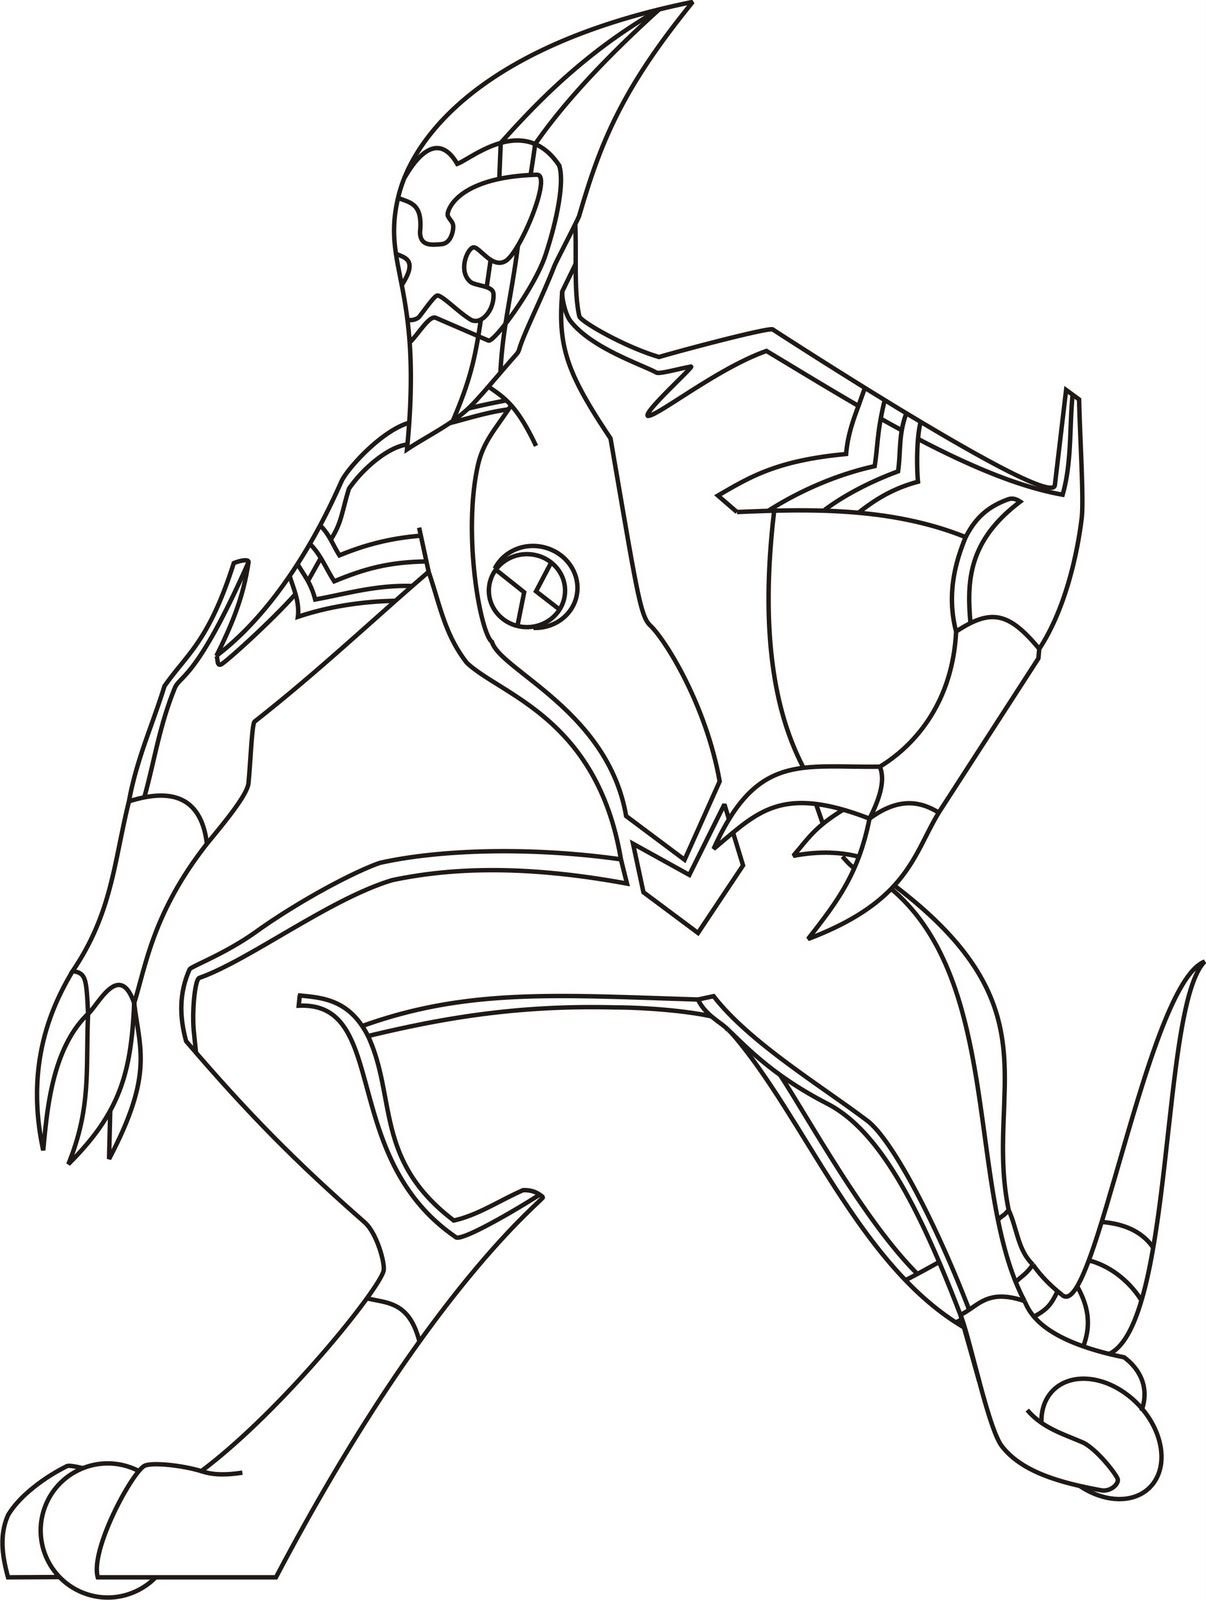 coloring pages aliens - photo#38